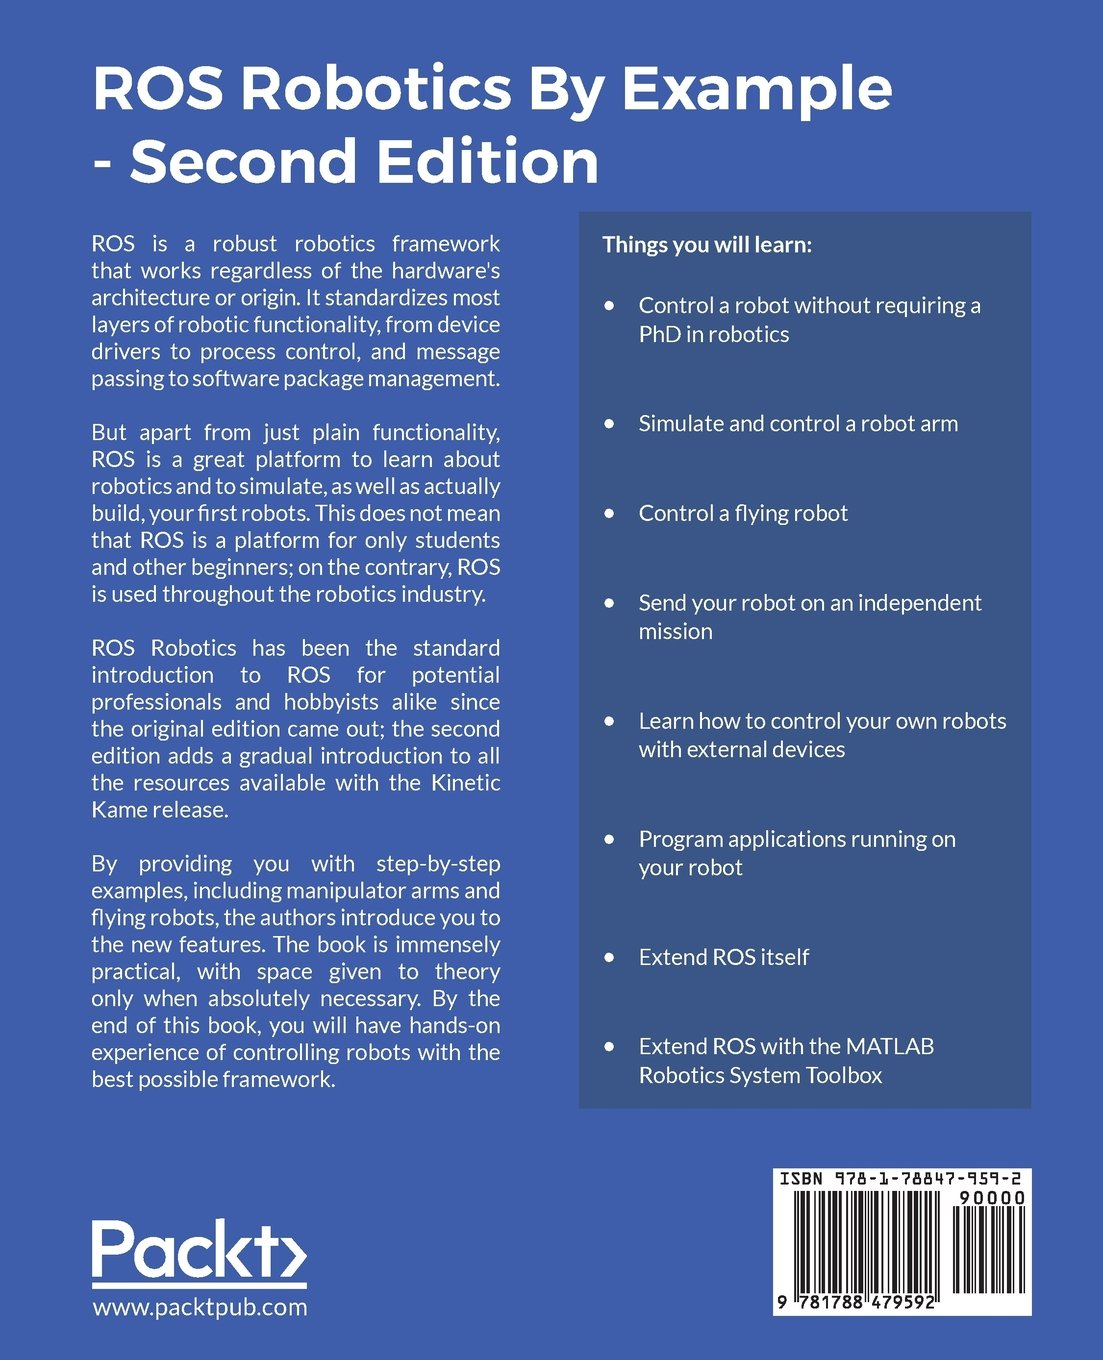 ROS Robotics By Example - Second Edition: Learning to control ...